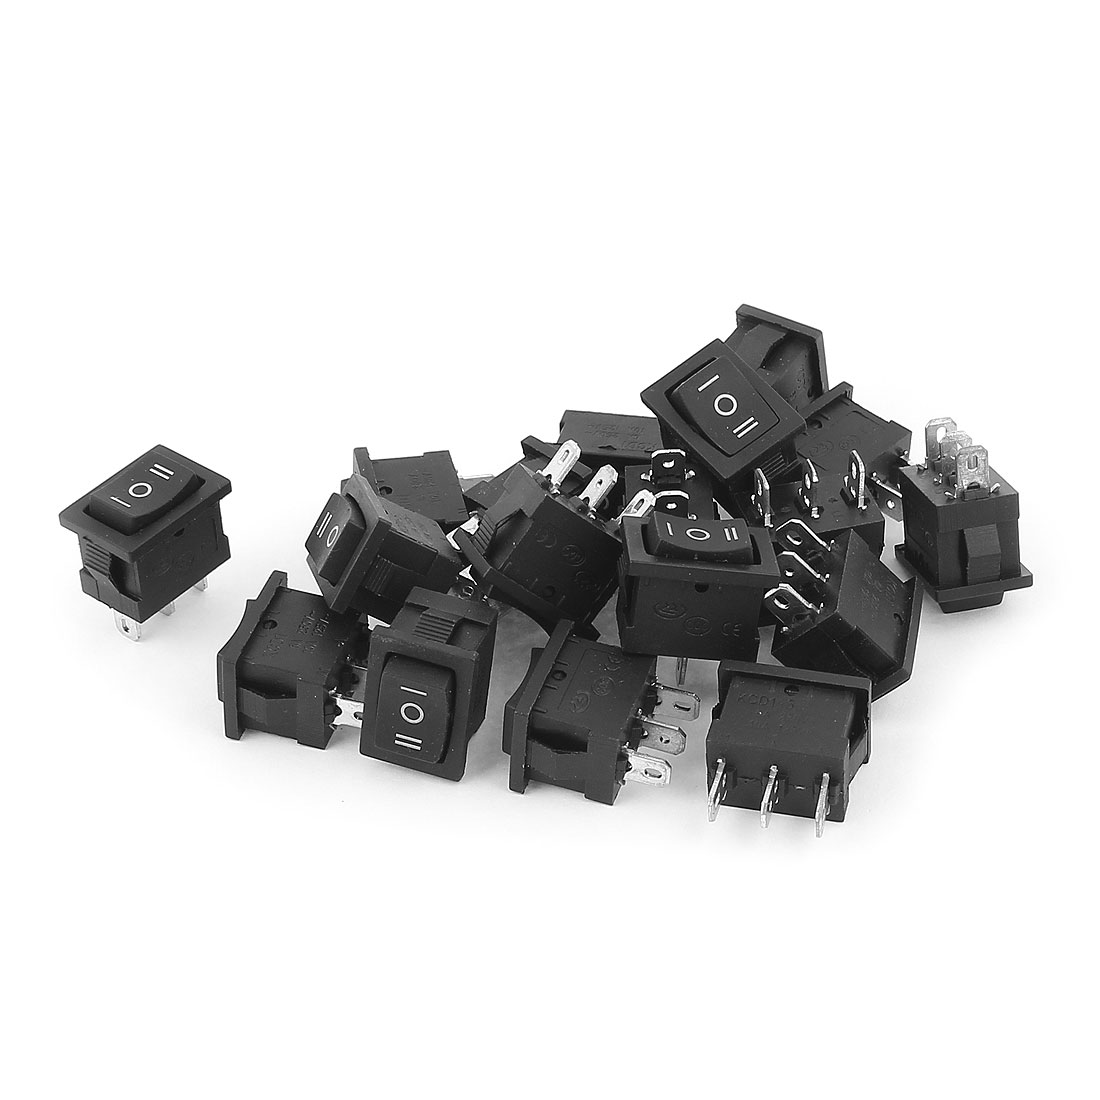 18pcs SPDT 3 Terminals Soldering 3 Position Snap in Mounted Boat Rocker Switch AC 250V 6A AC125V 10A